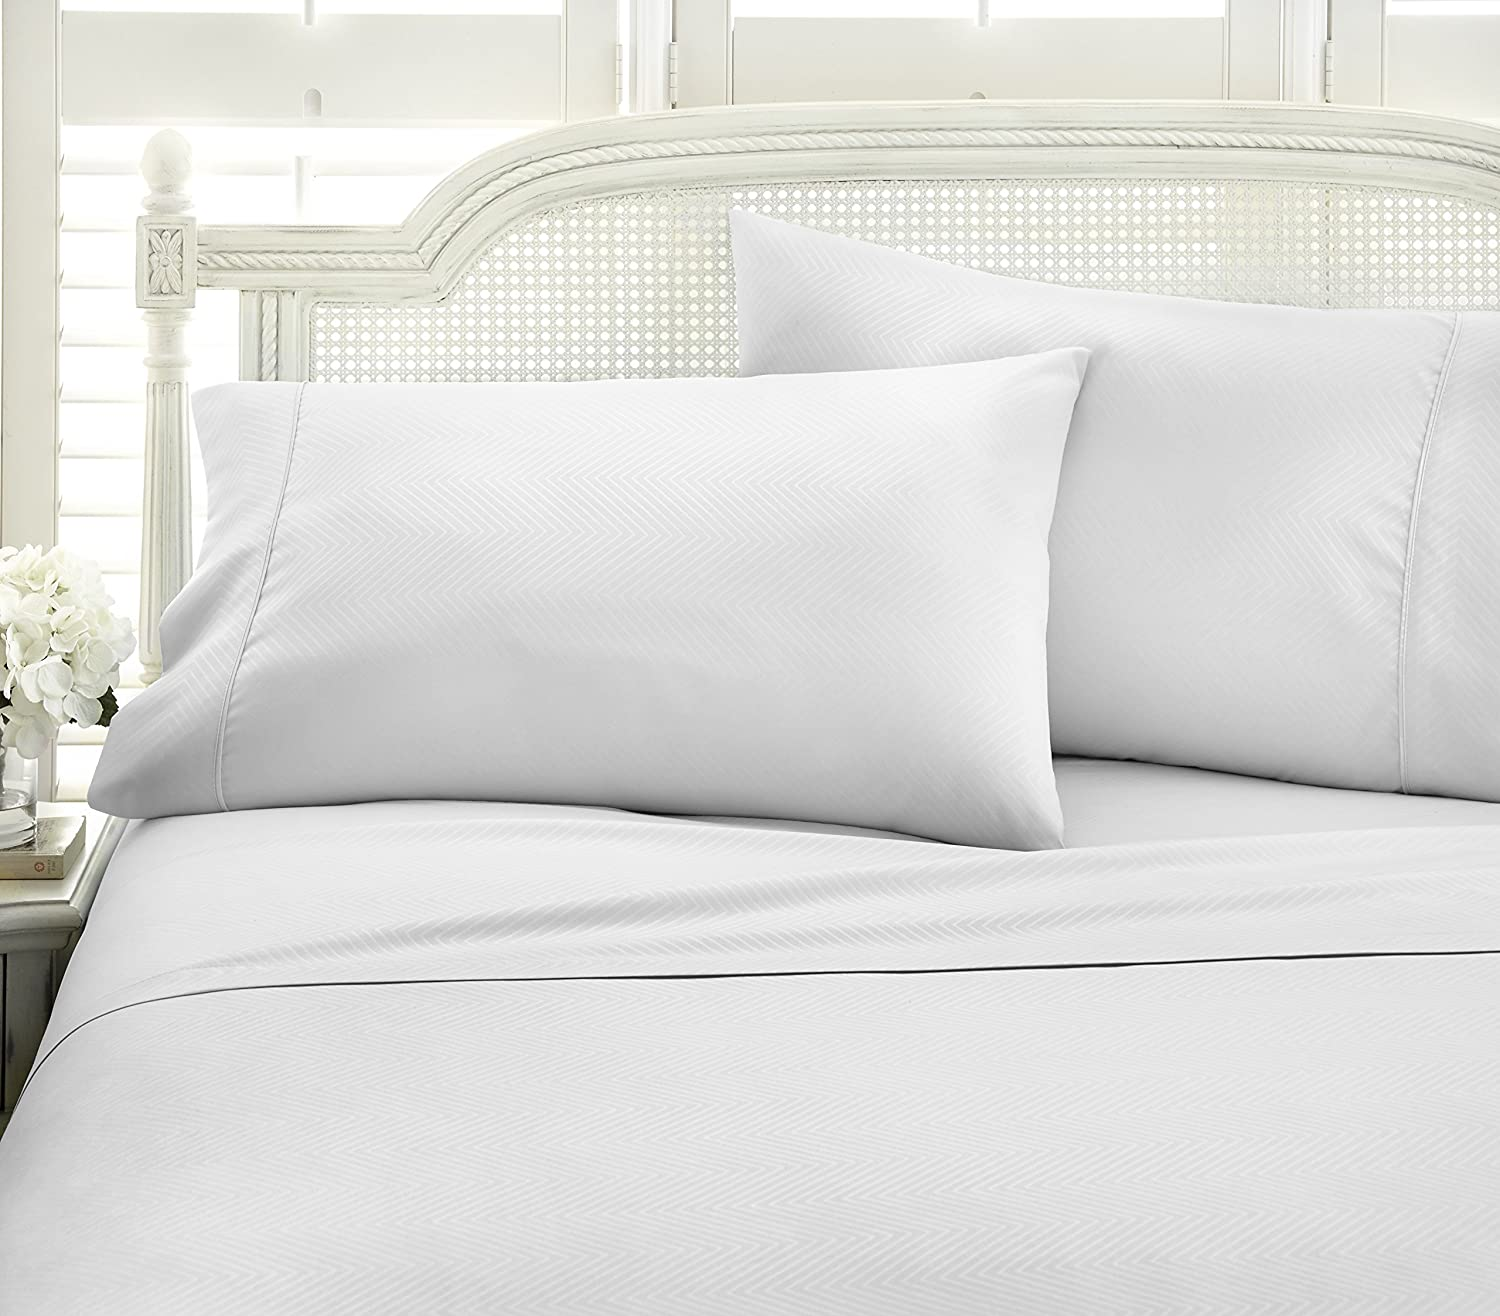 ienjoy Home Hotel Collection Embossed Chevron 4 Piece Sheet Set, KING, WHITE